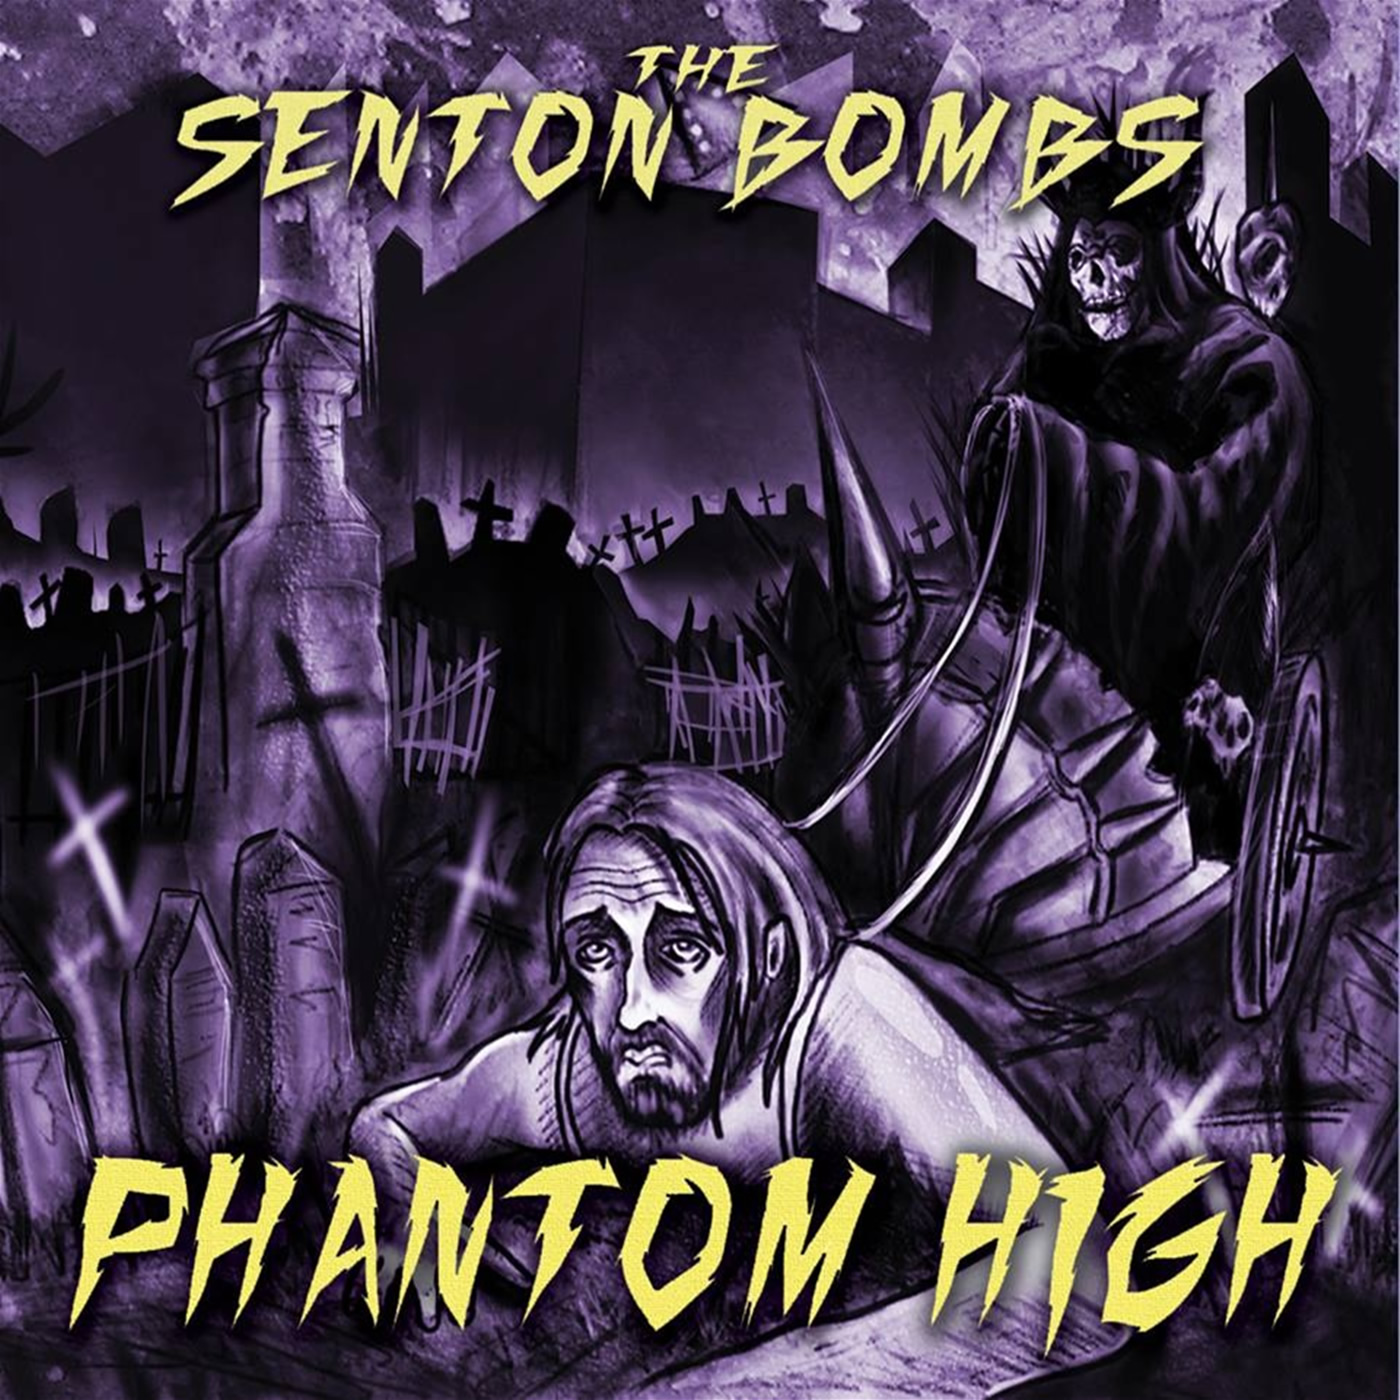 Punk rock band The Senton Bombs music download stream Phantom High